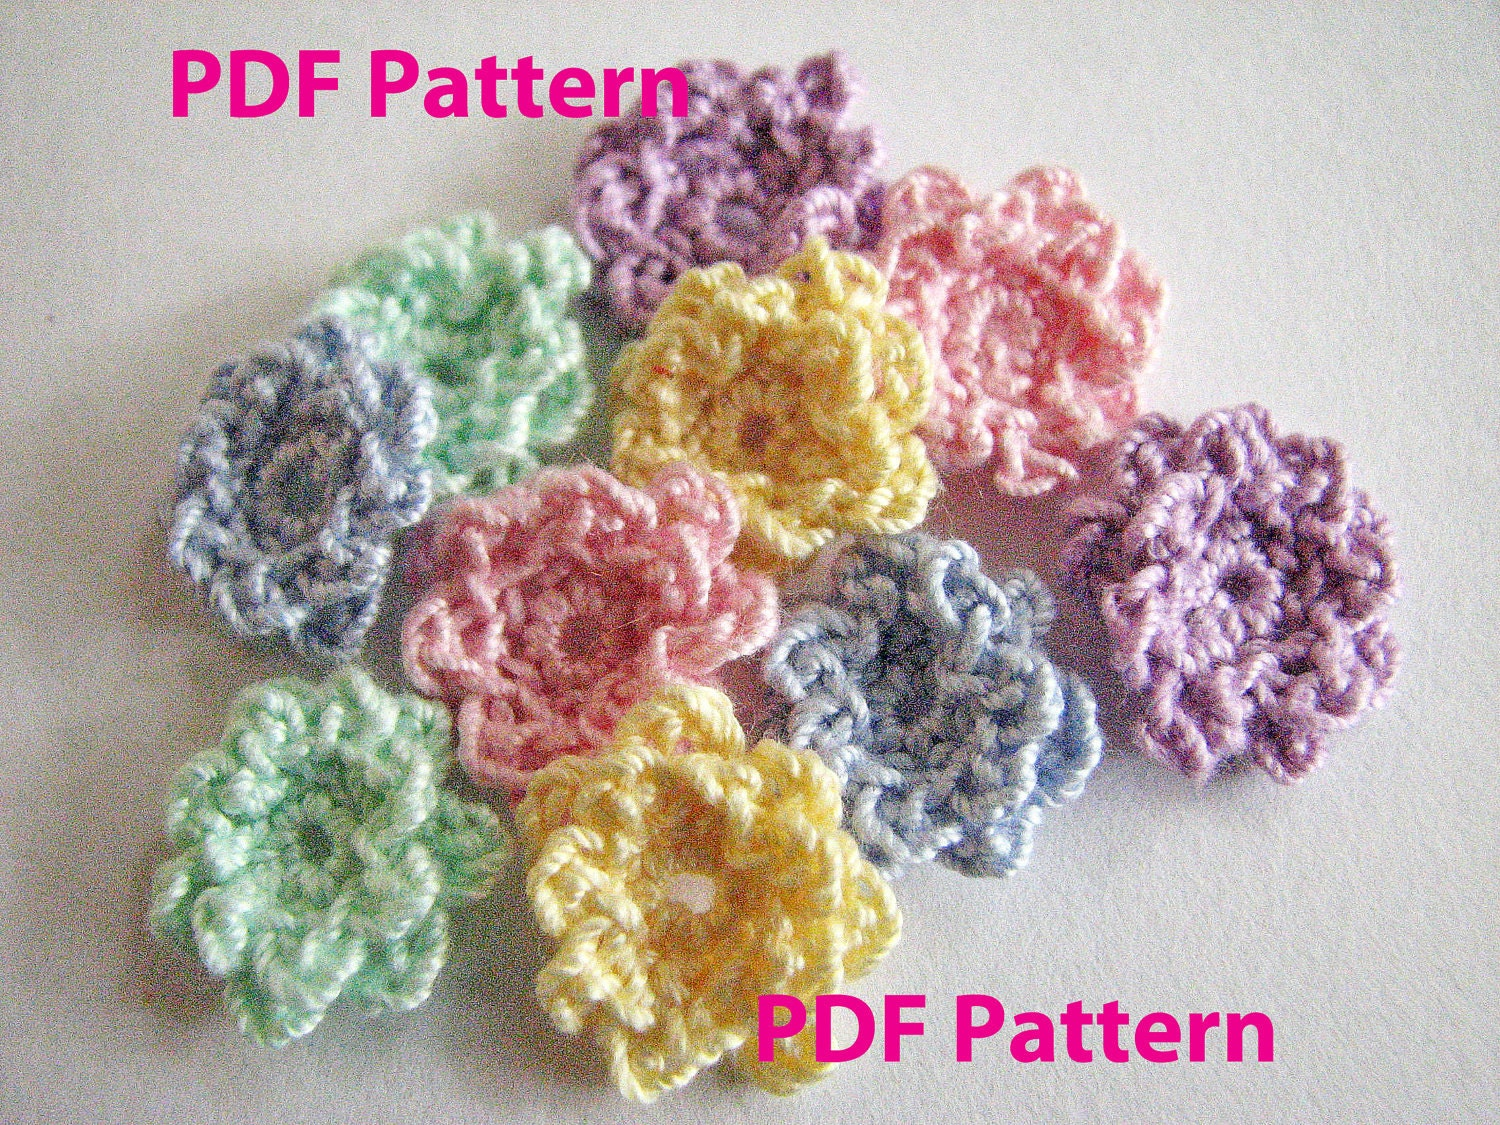 Crochet Flower Pattern Small : Crochet Flower Pattern Tiny Ruffle Flower Instant Download